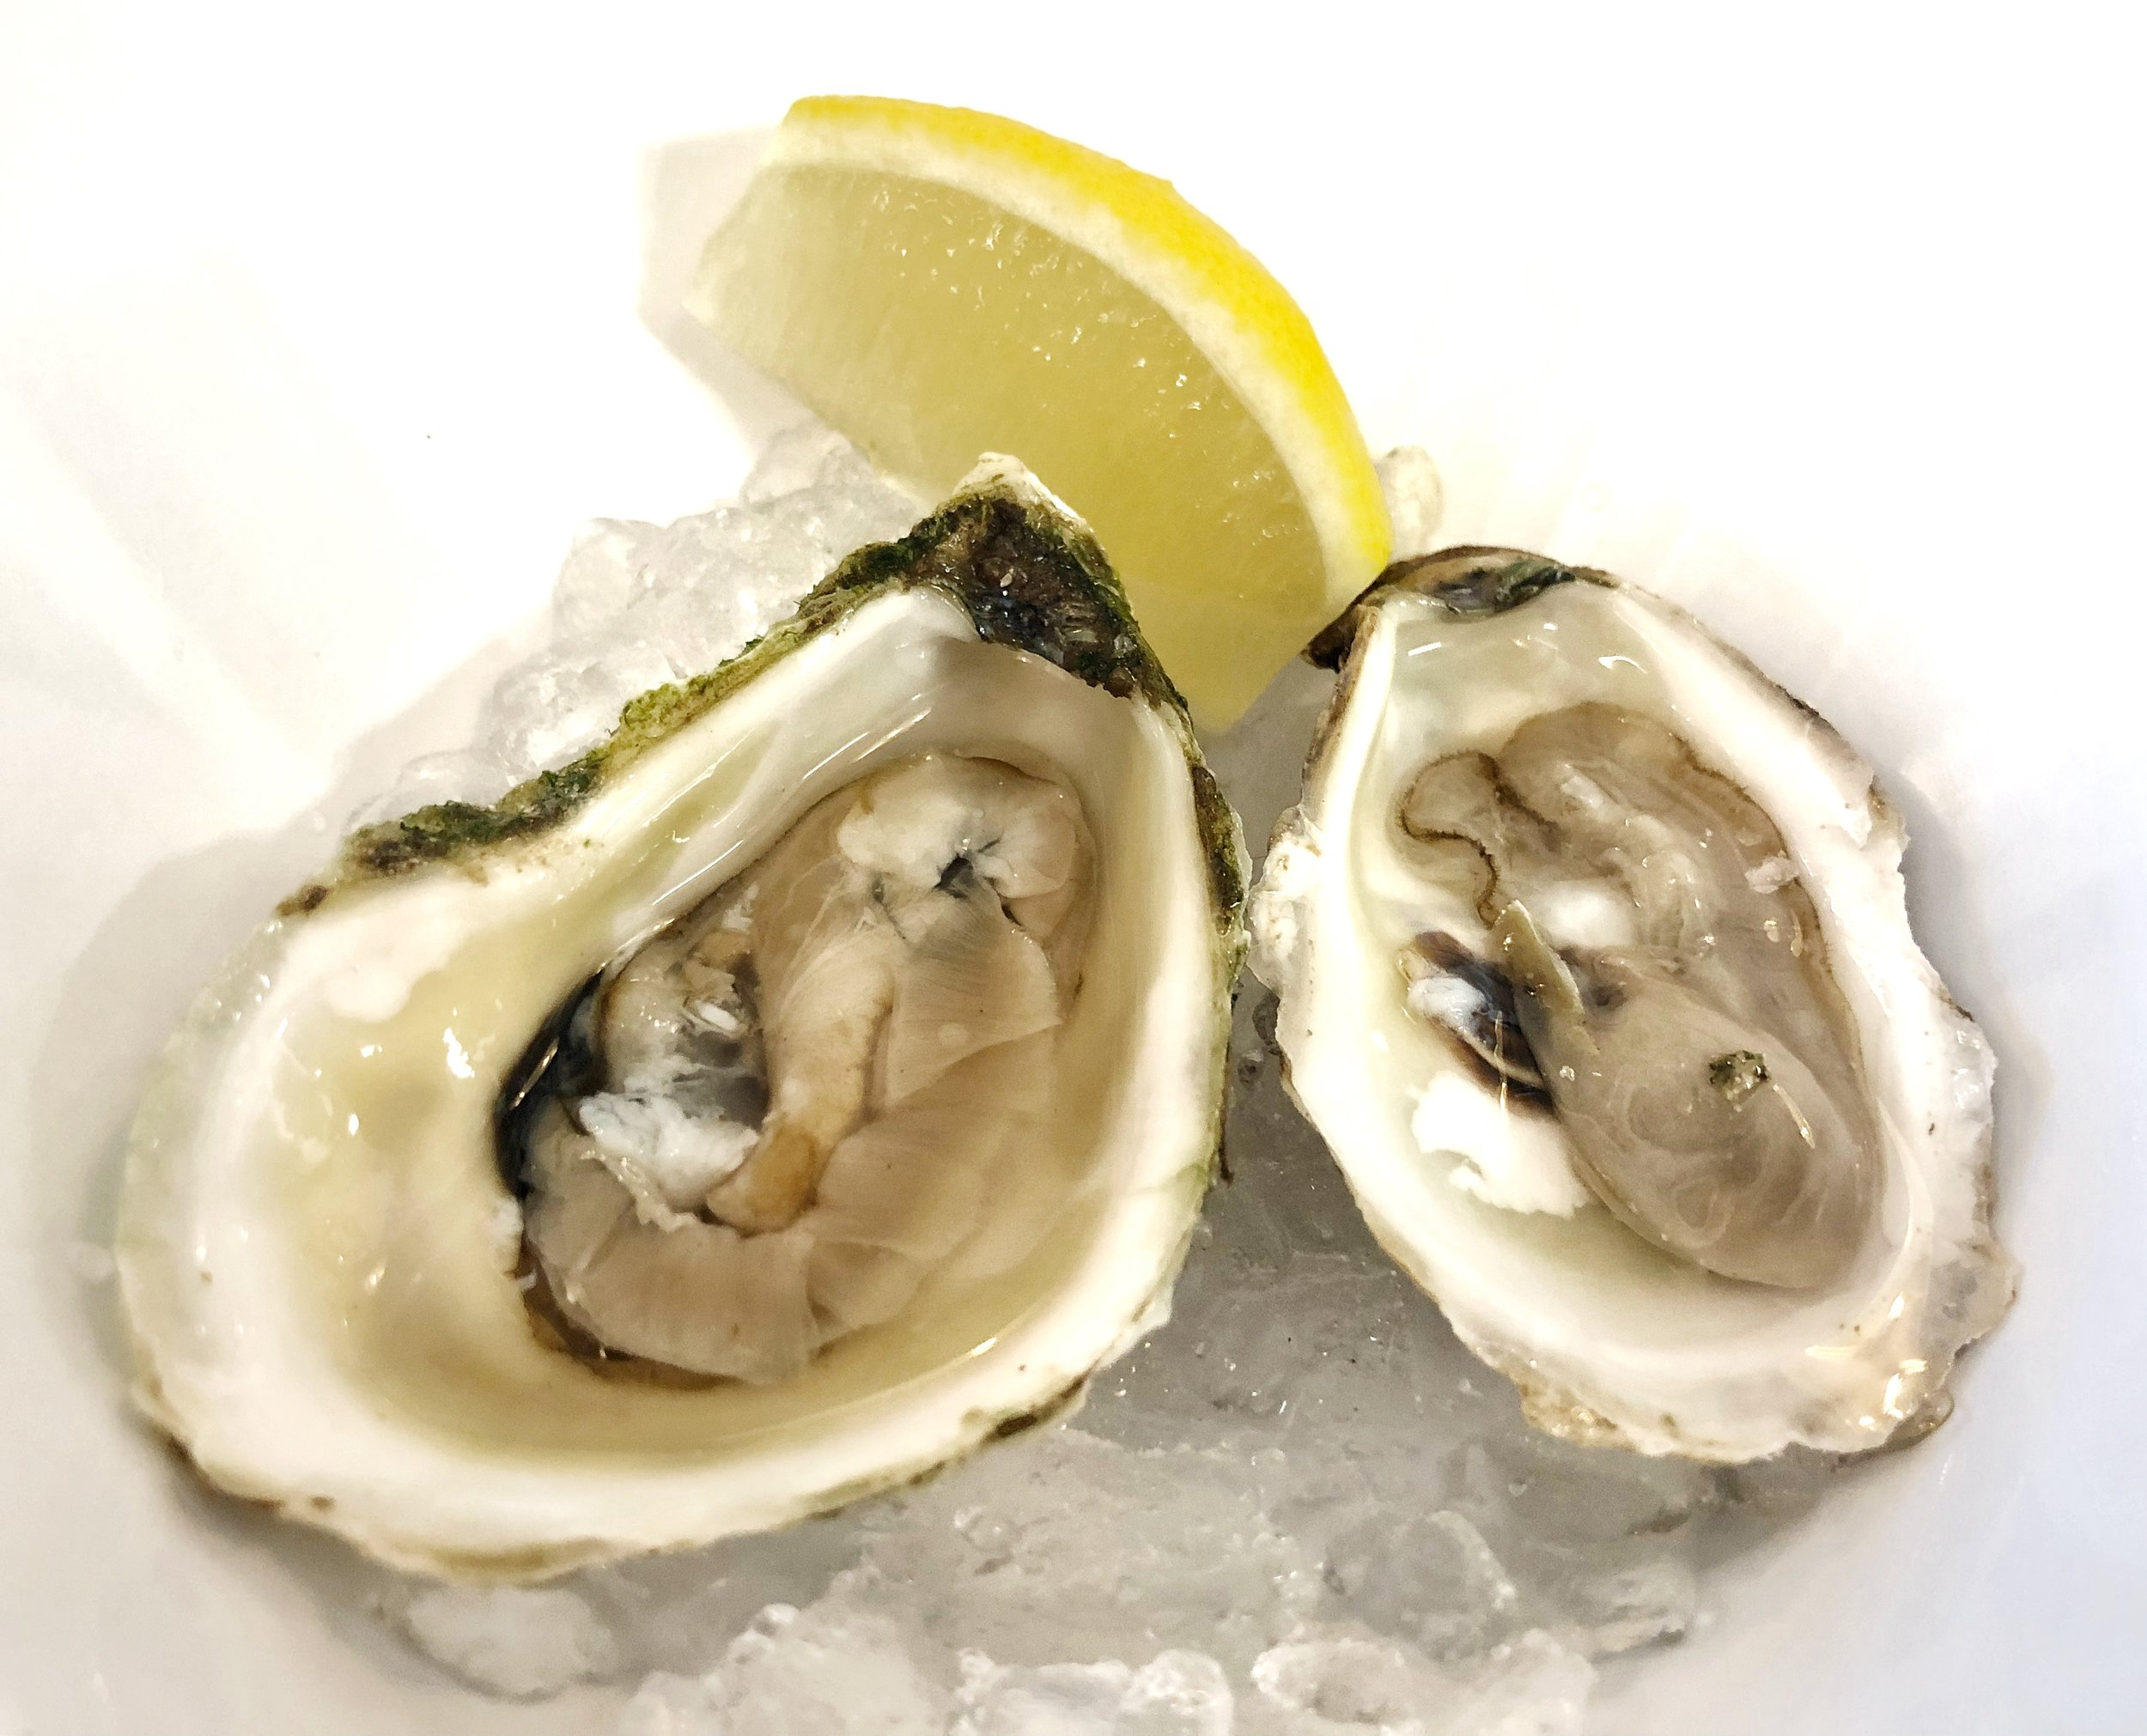 Oysters - Oyster Happy Hour runs every Monday-Friday from 4pm-7pm